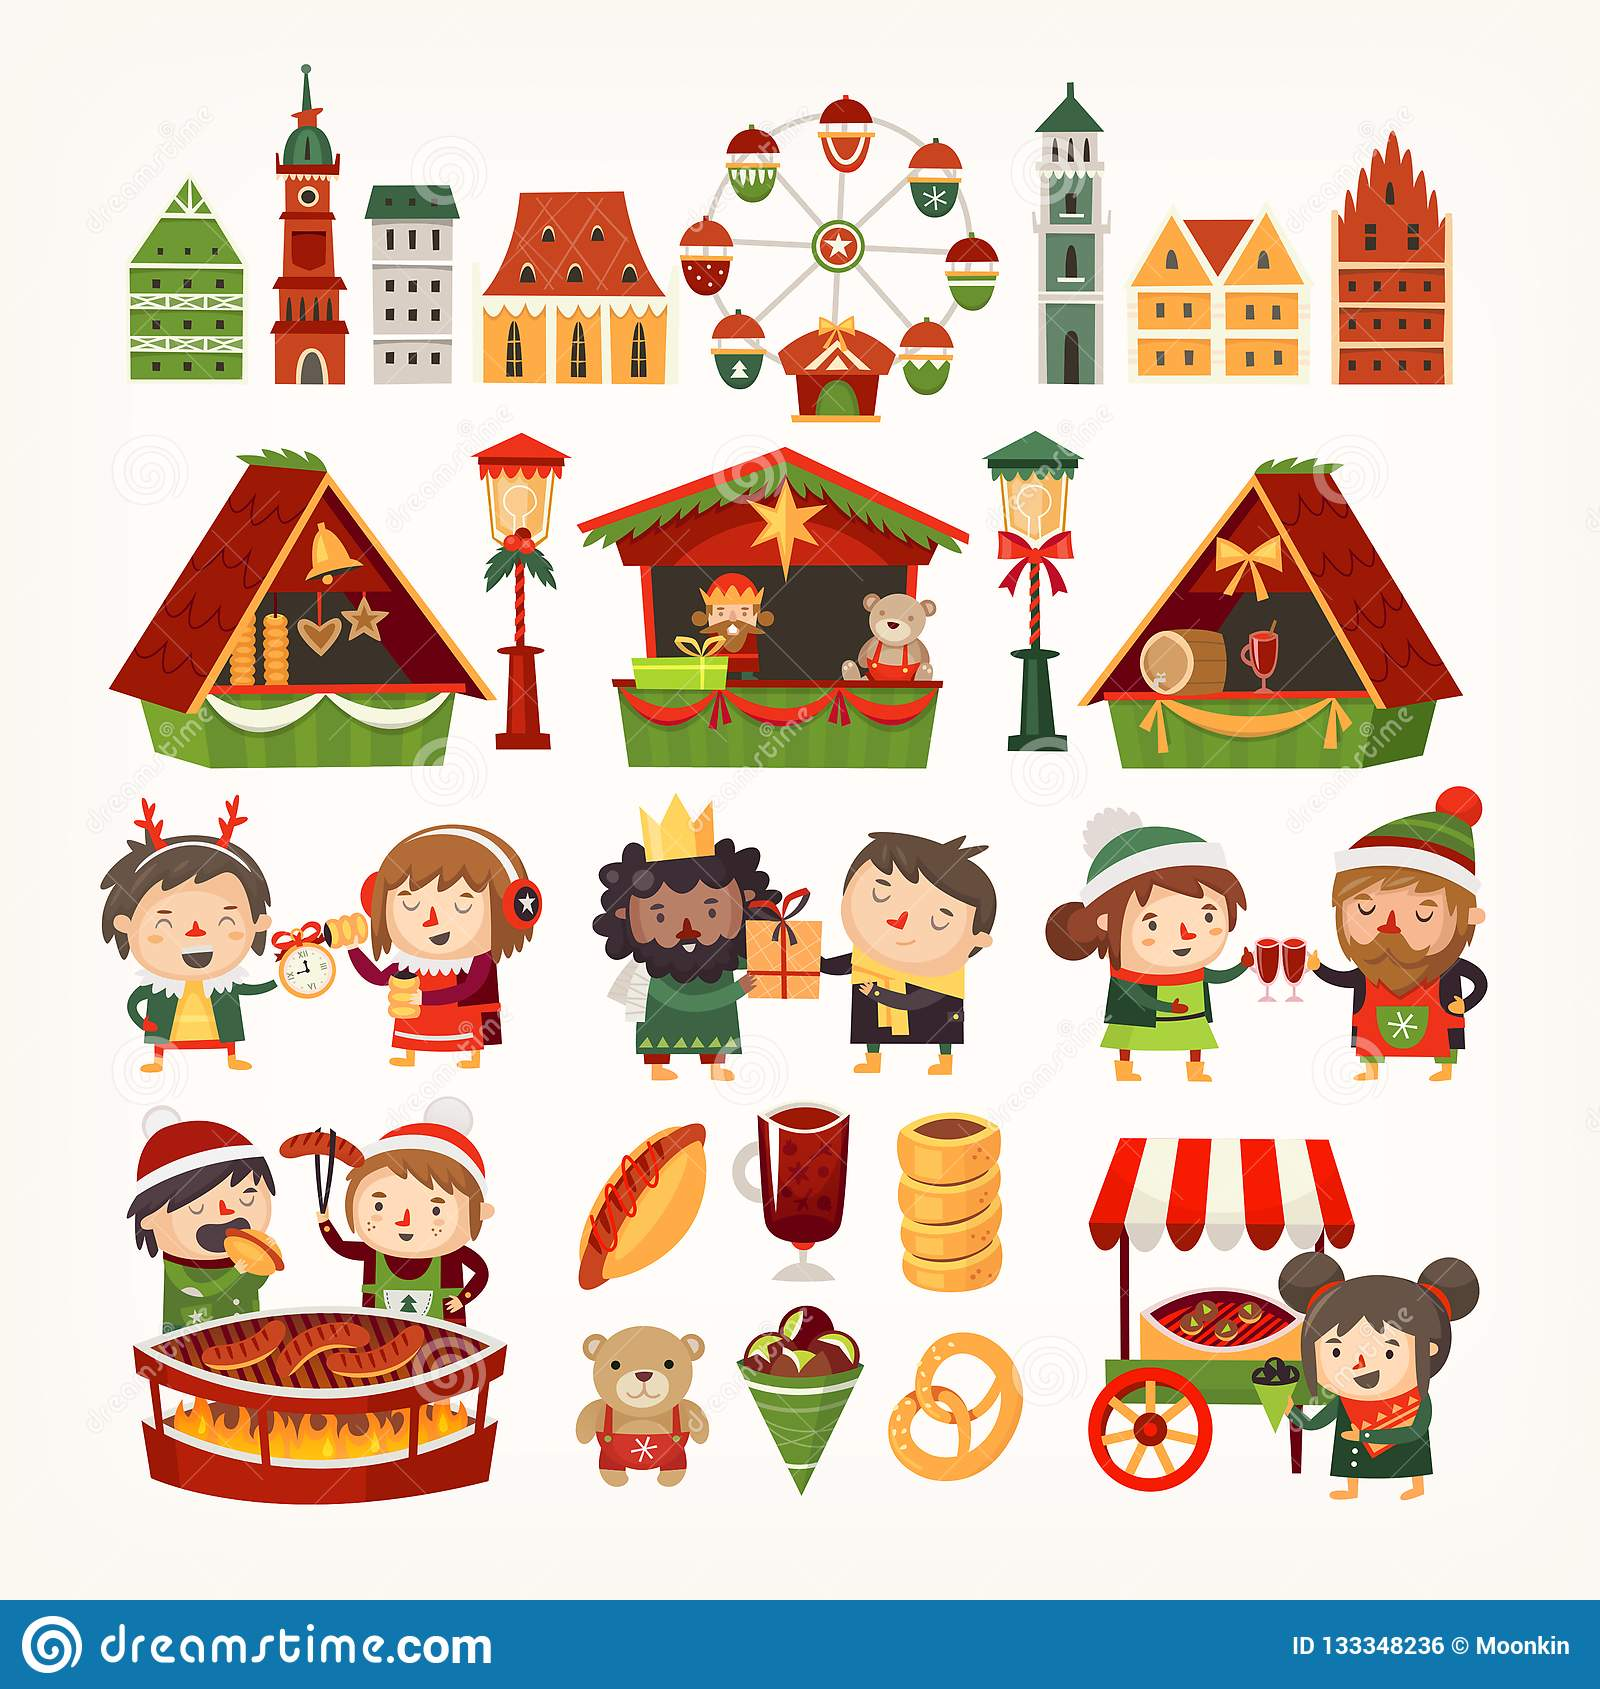 Set of Christmas market elements. Classic European buildings, tents selling goods, people cooking winter treats.